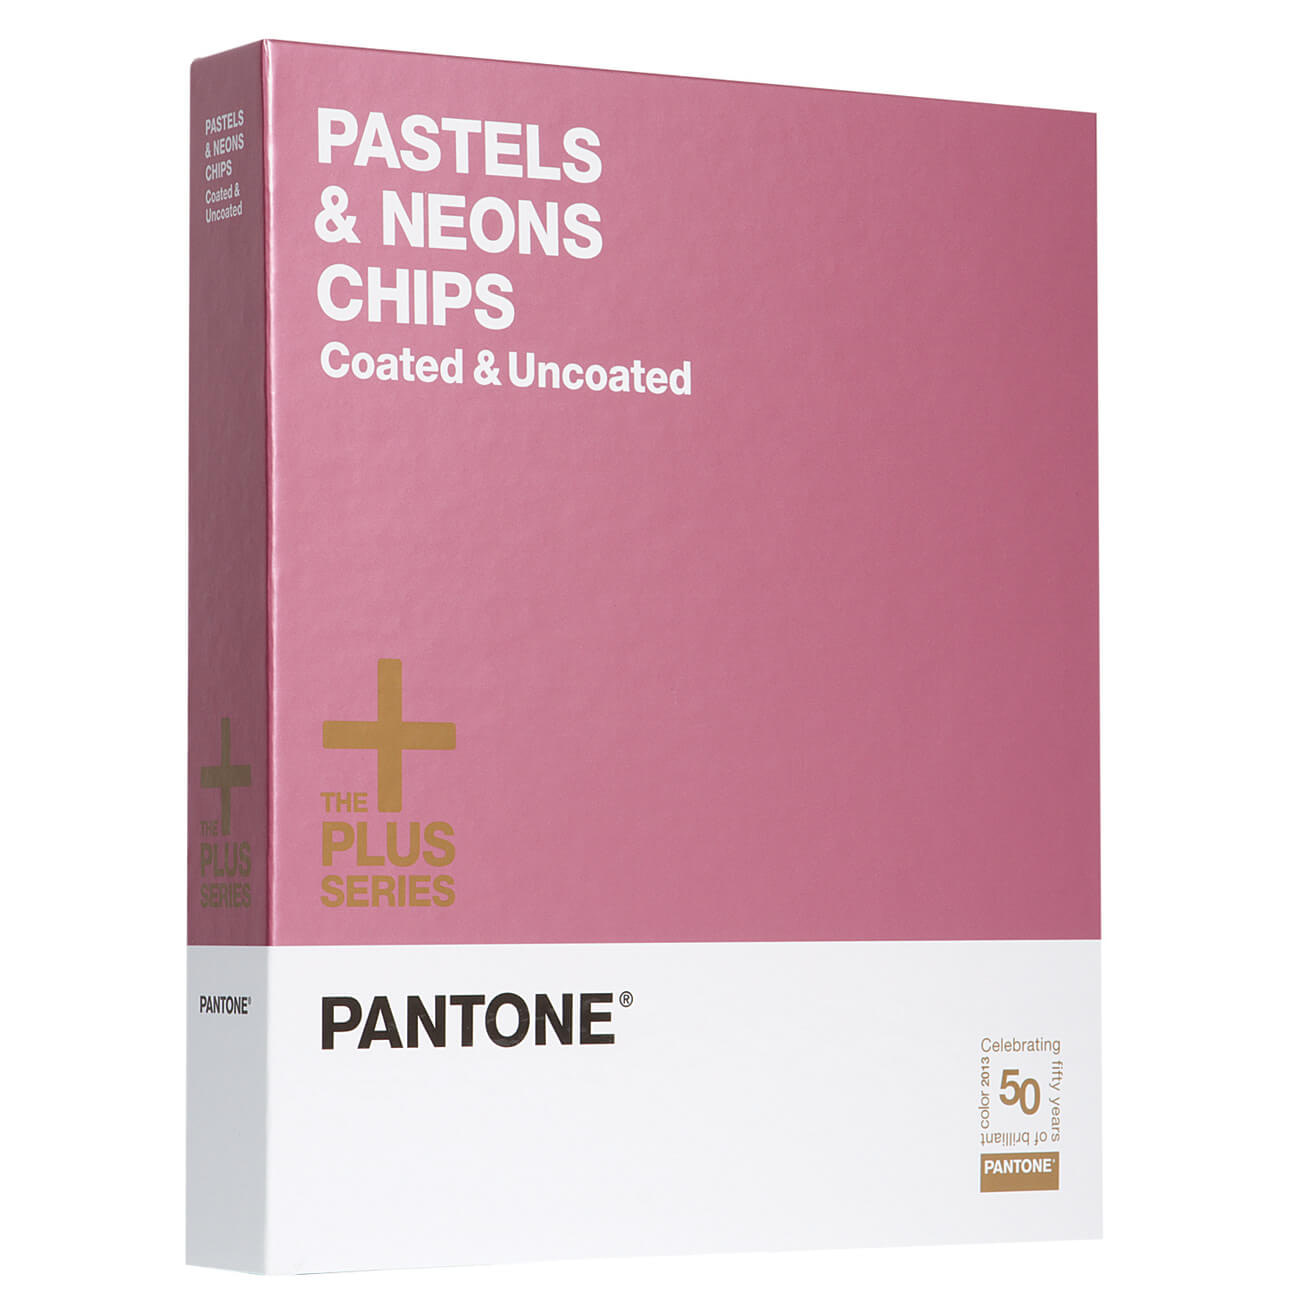 Pantone GB1404 Pastels & Neons Chips Coated & Uncoated